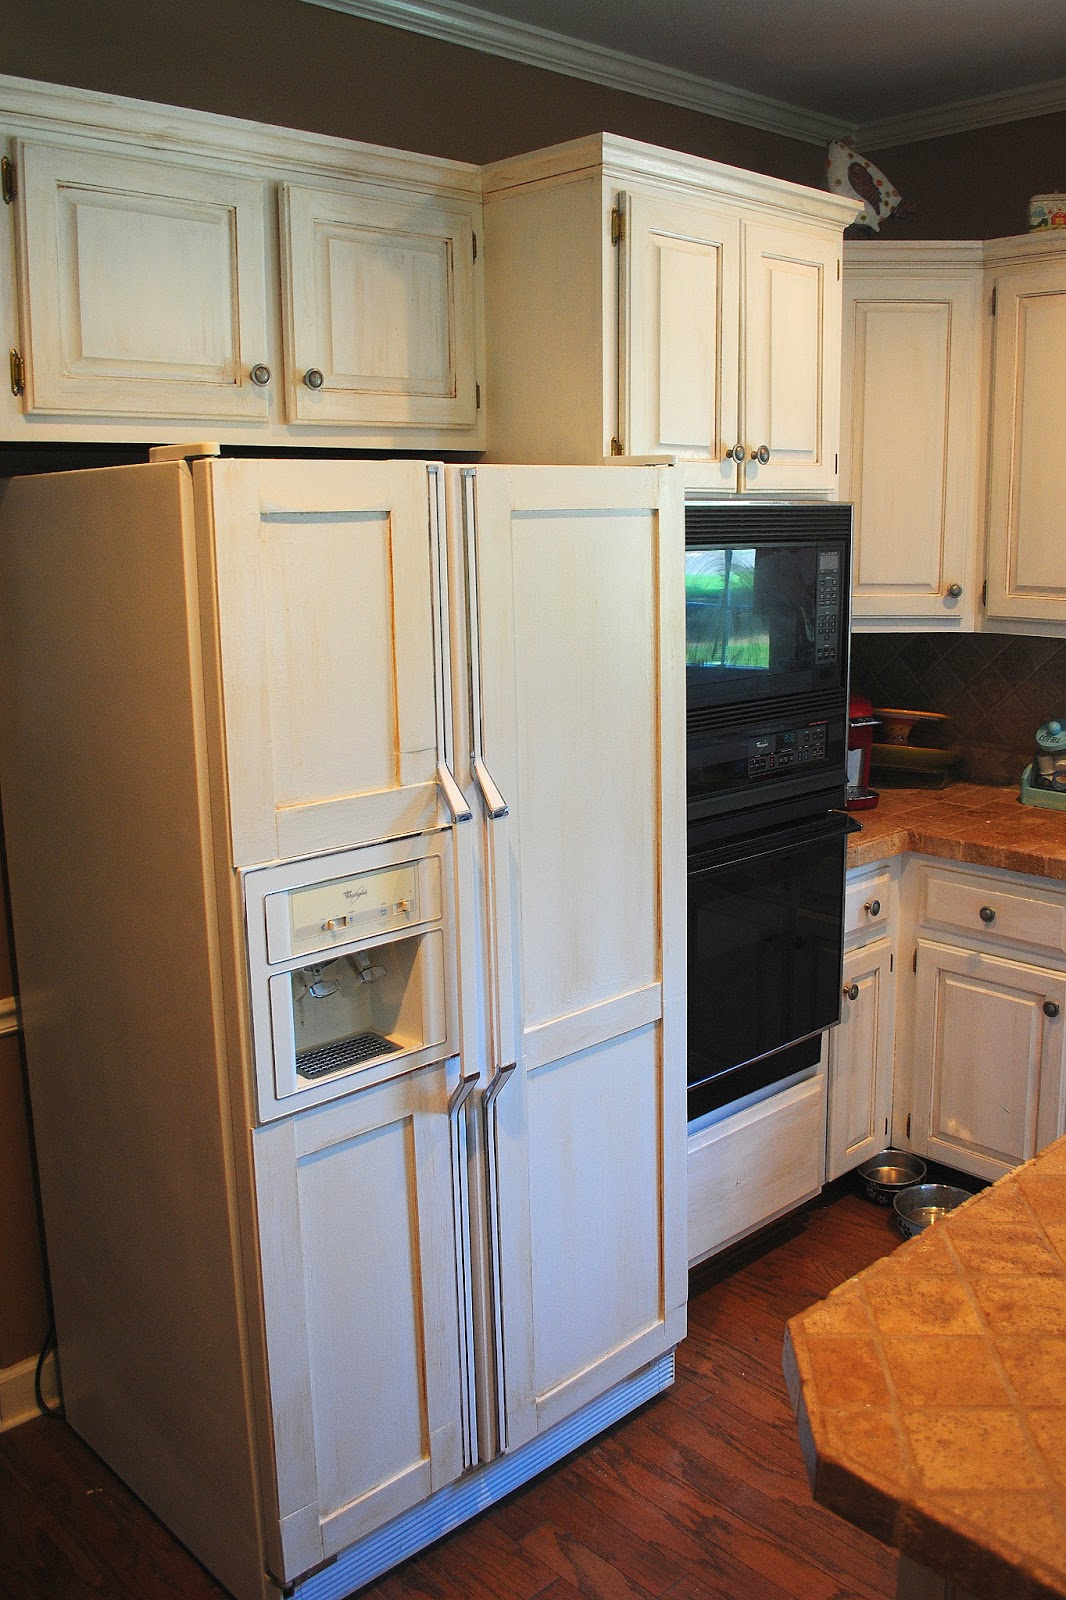 built in wine rack kitchen cabinets bar stools with backs amazing grays diy over fridge